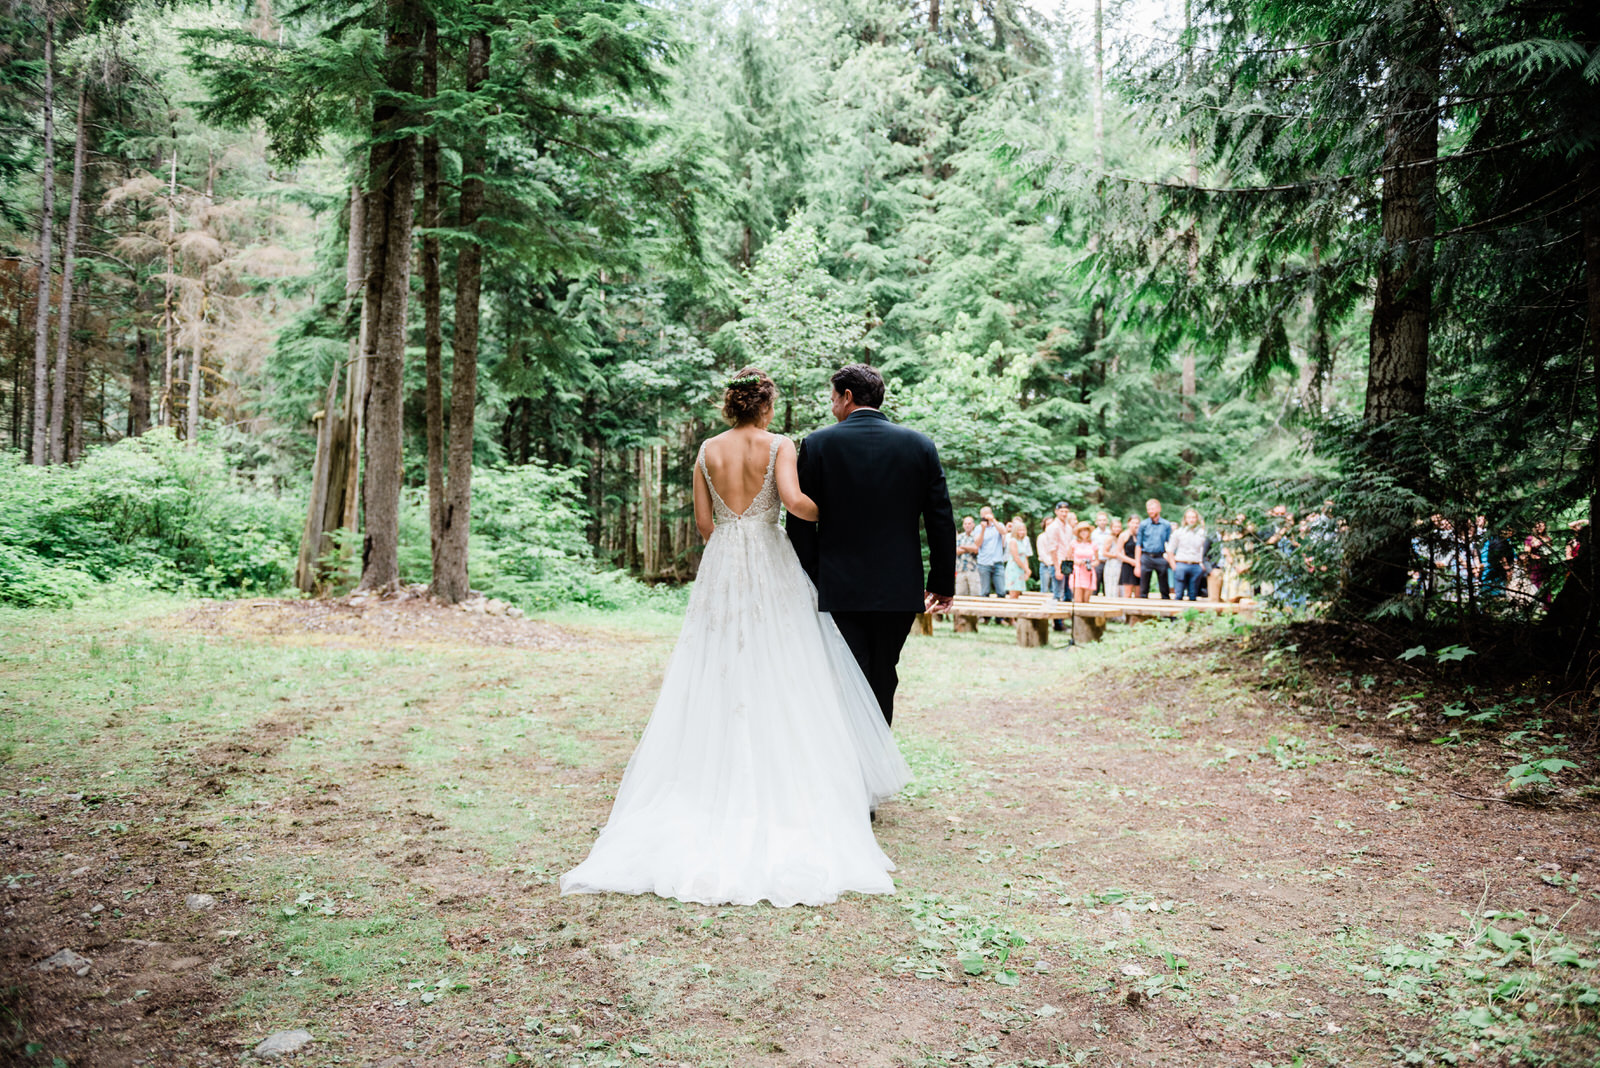 father walks daughter down the aisle at forest wedding